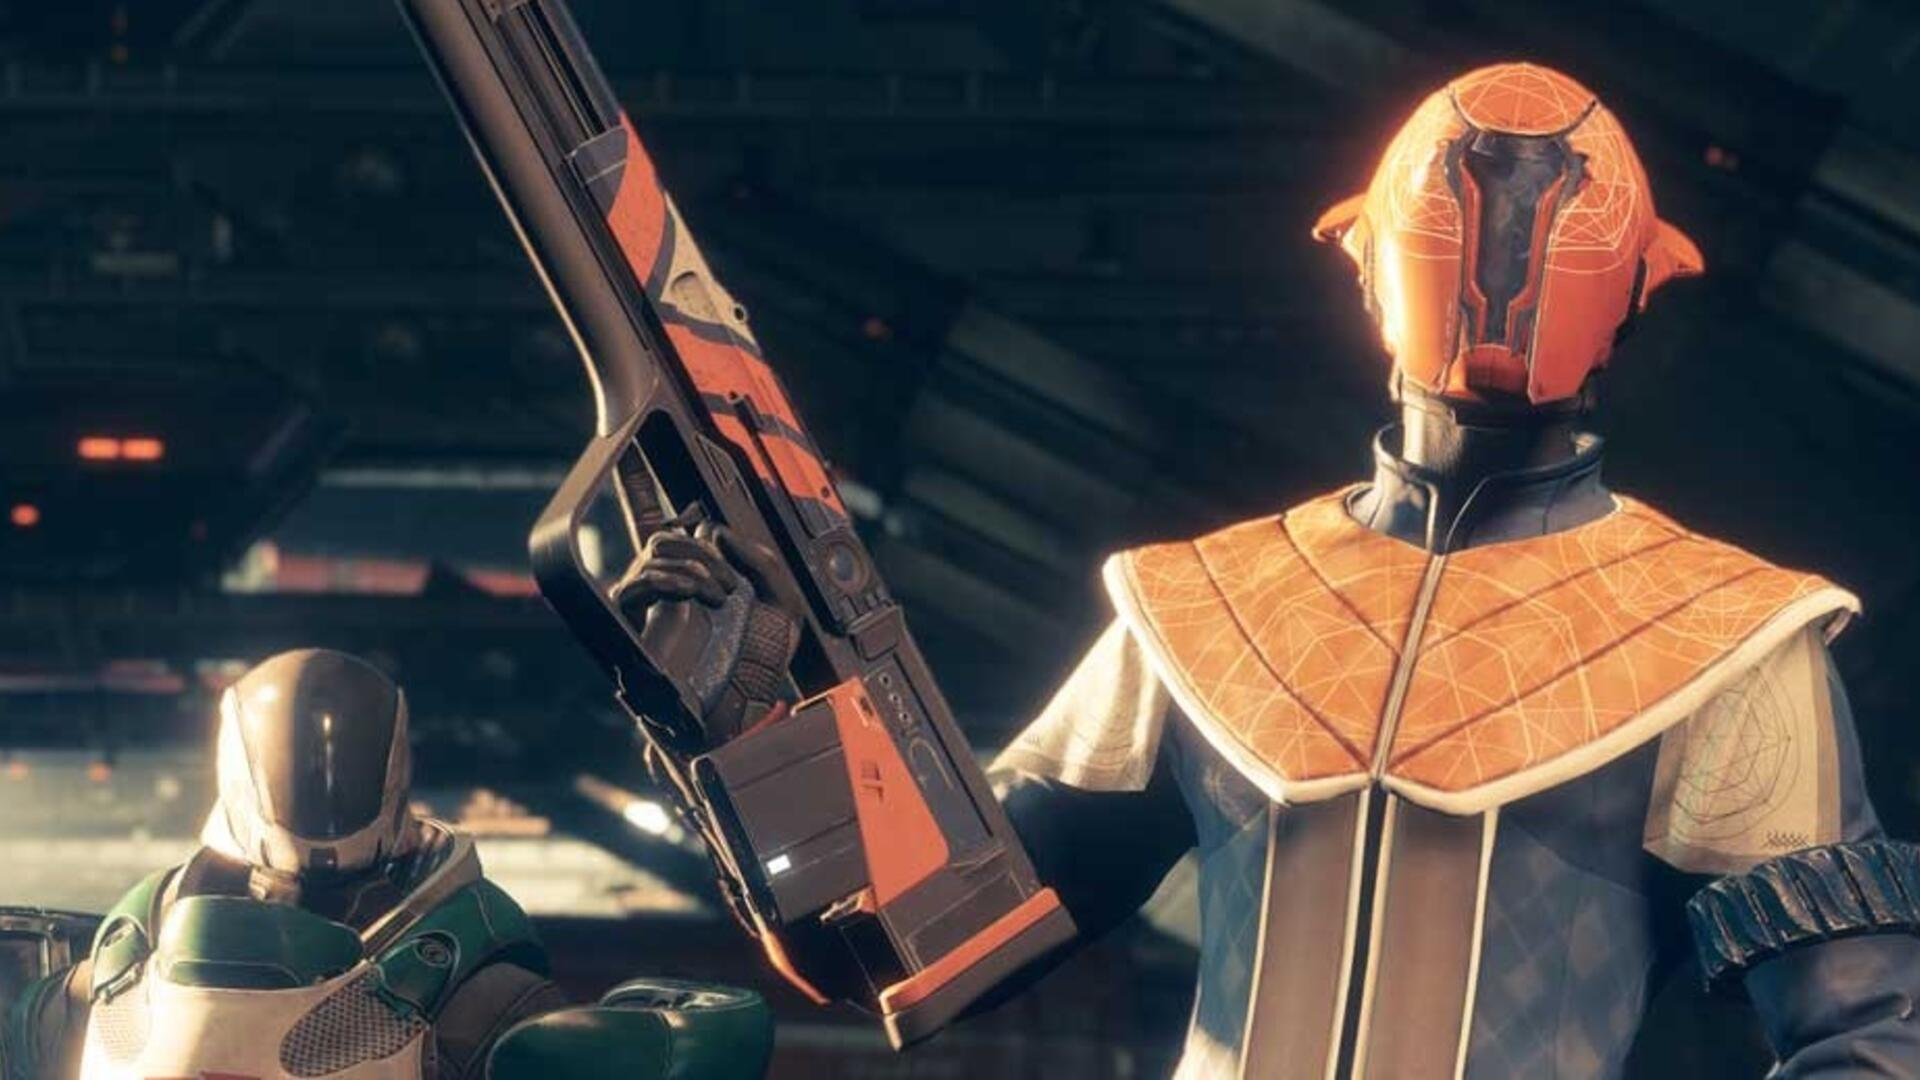 Destiny 2 Guided Games - How to Unlock Guided Games, How to Get a Nightfall Ticket